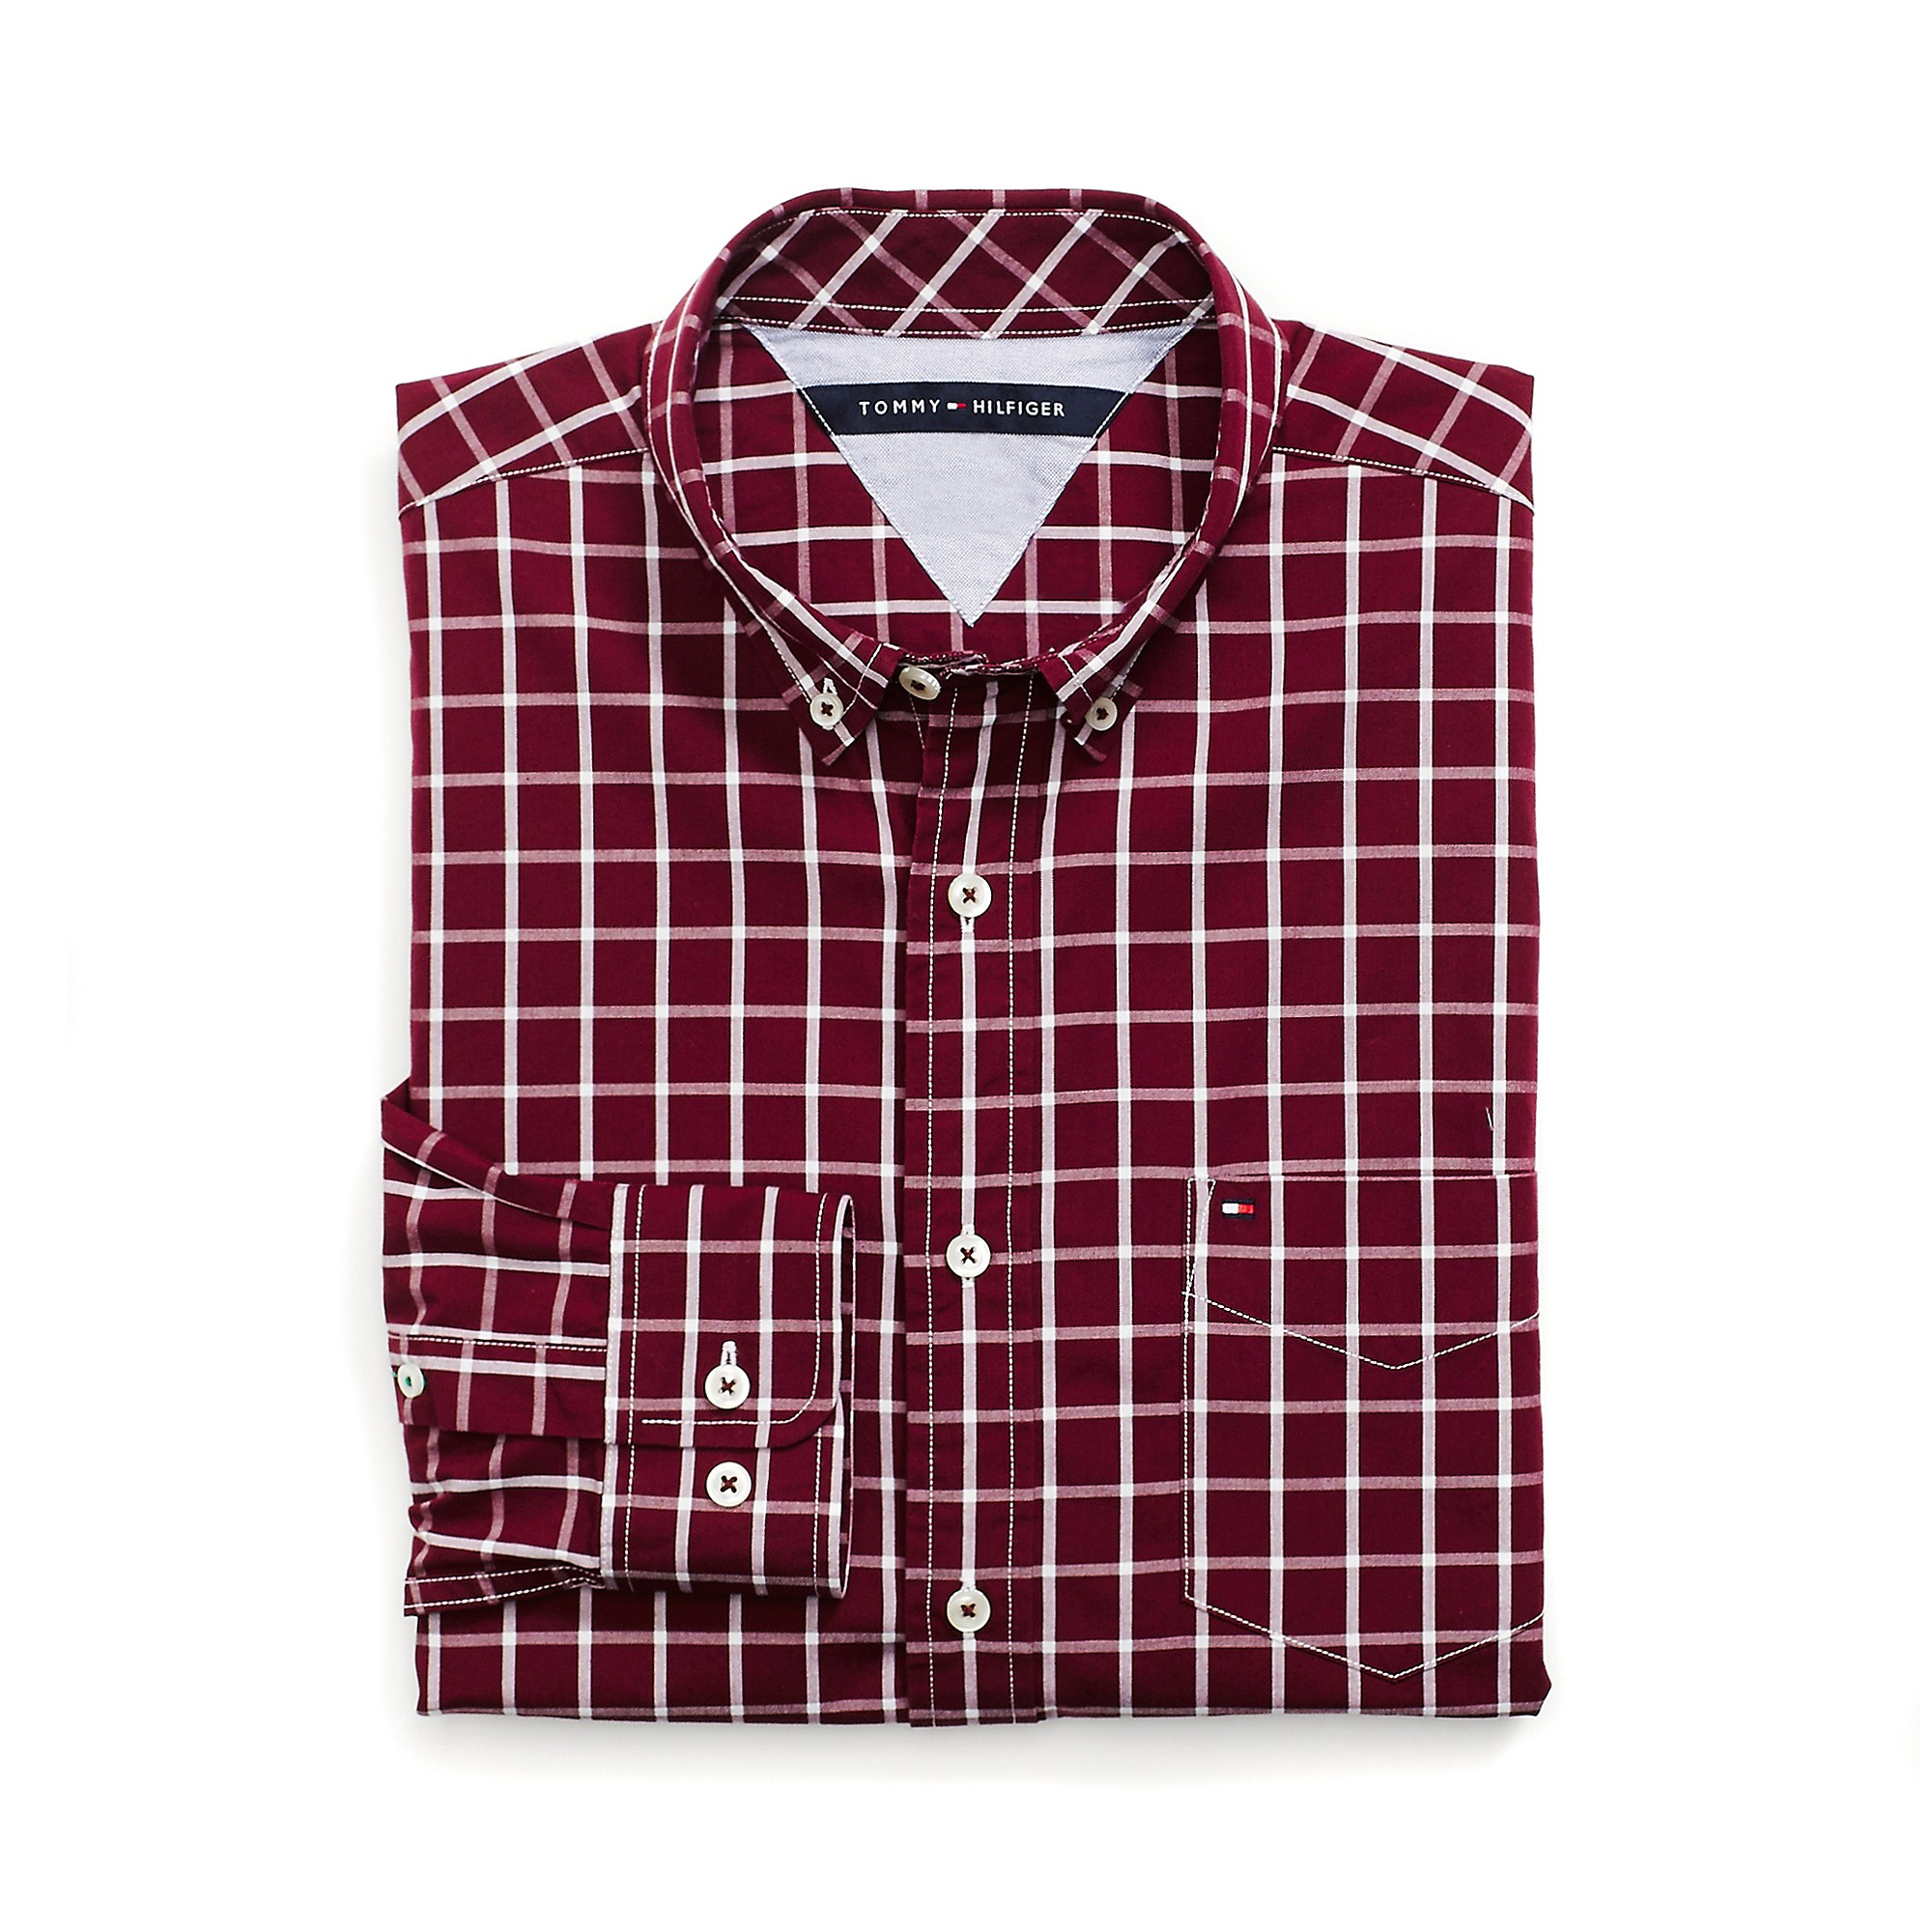 Tommy Hilfiger Classic Fit Plaid Shirt In Red For Men